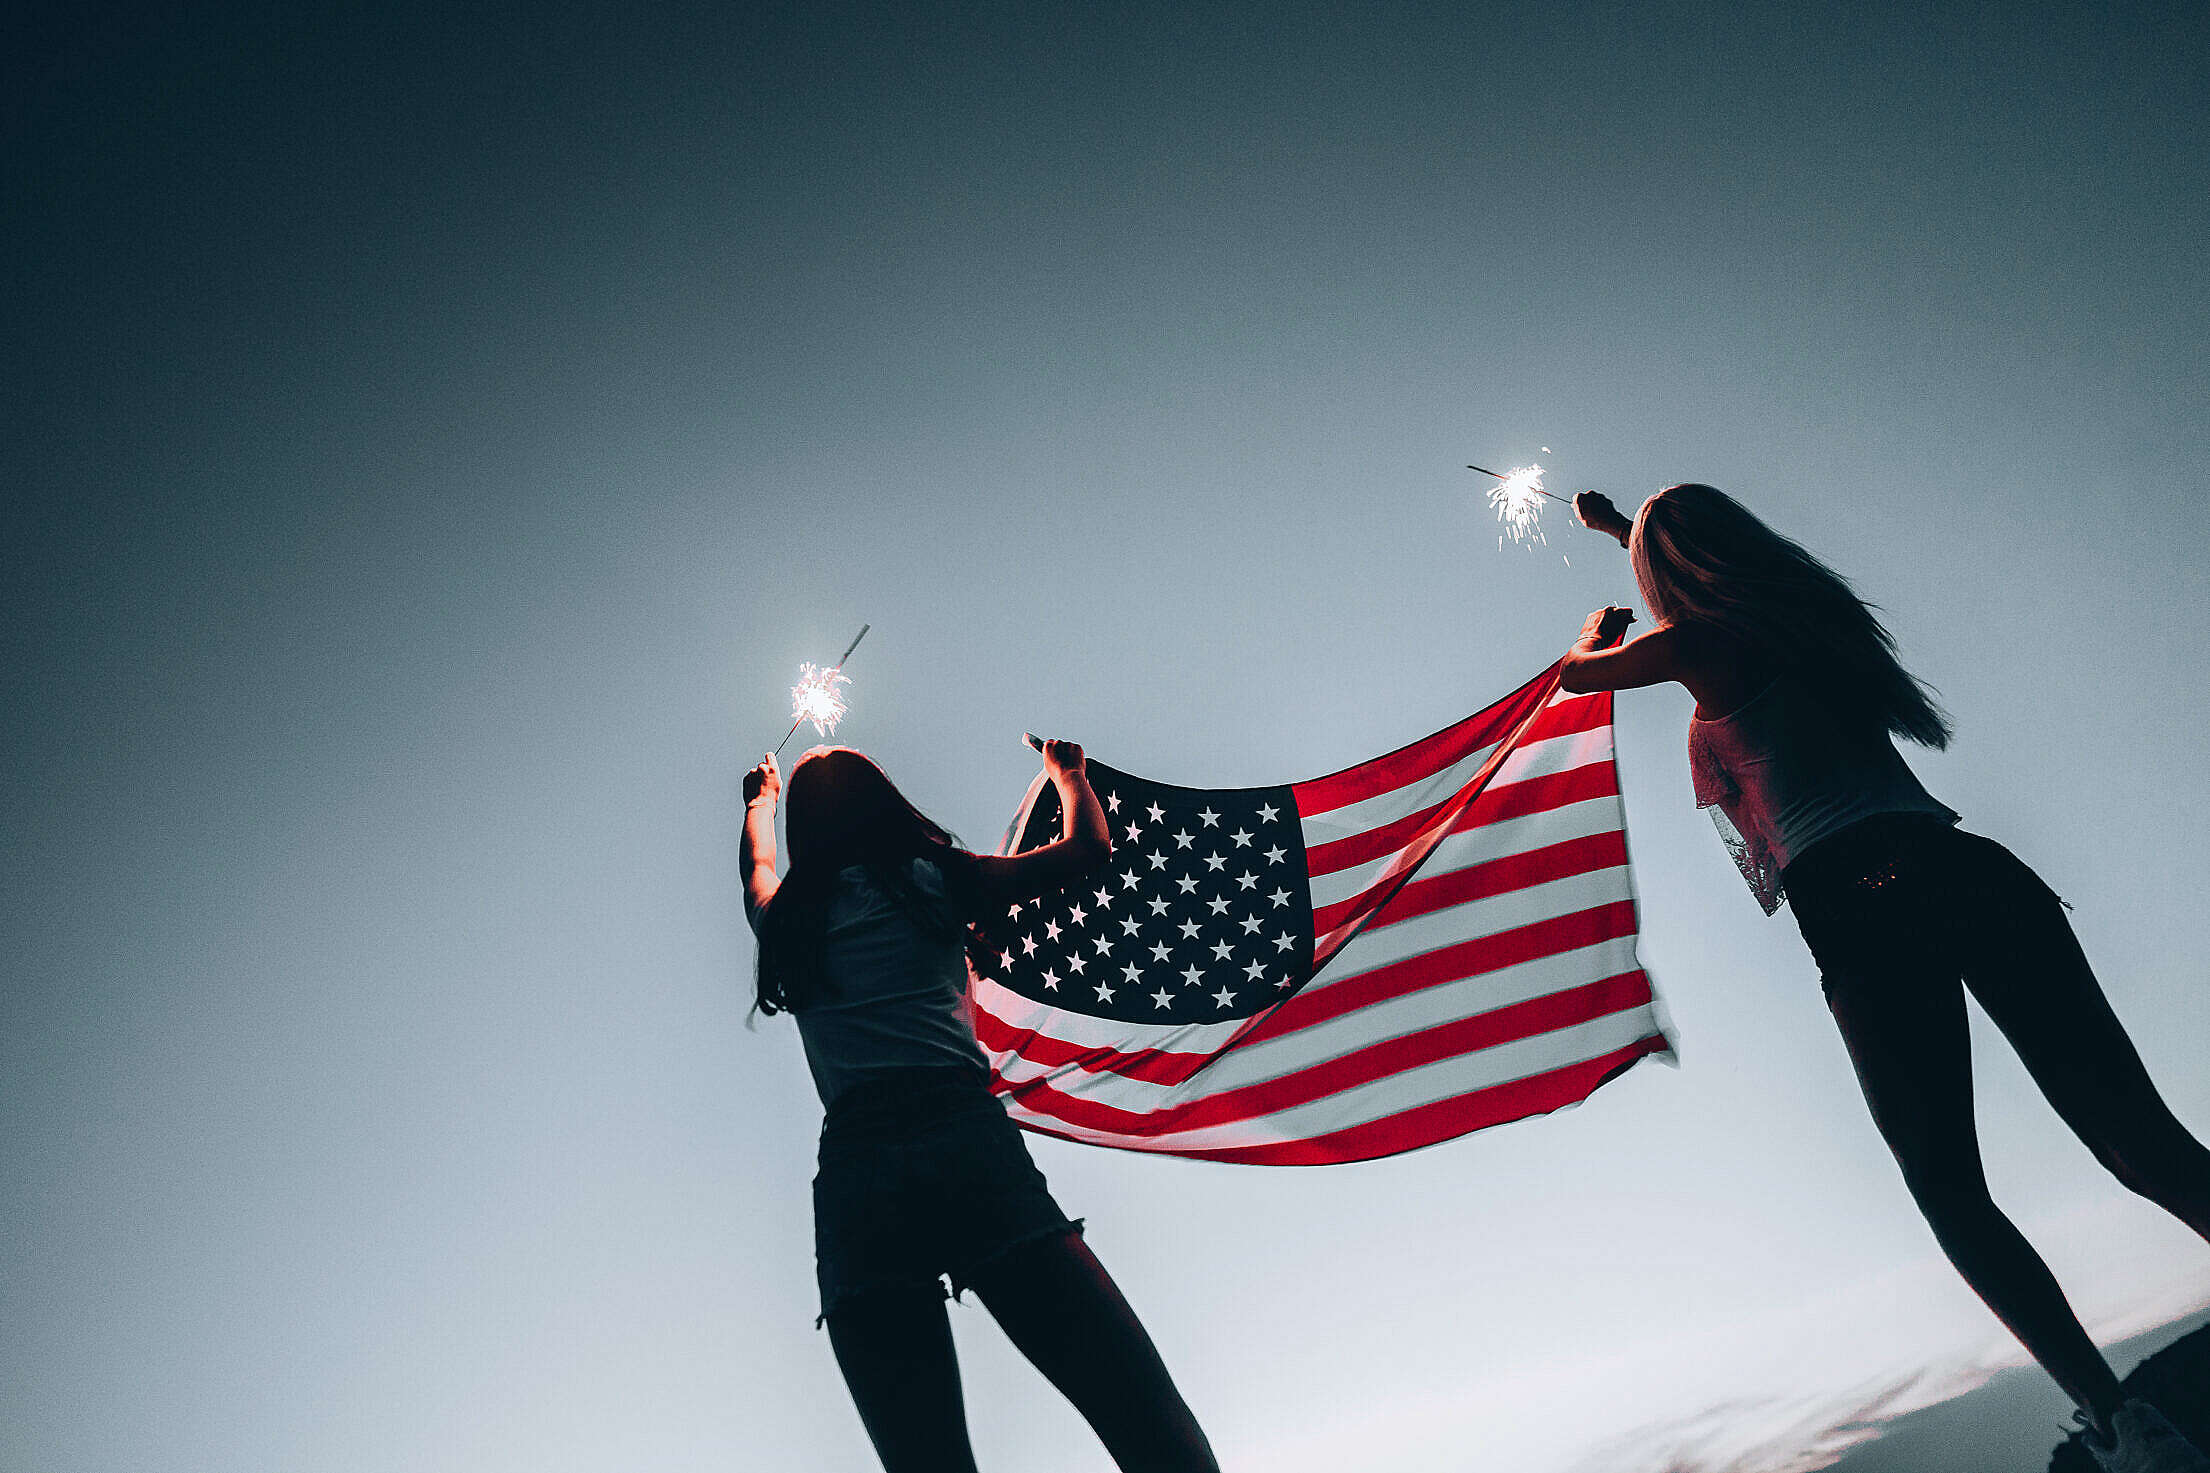 Girls Holding American Flag and Sparklers Free Stock Photo